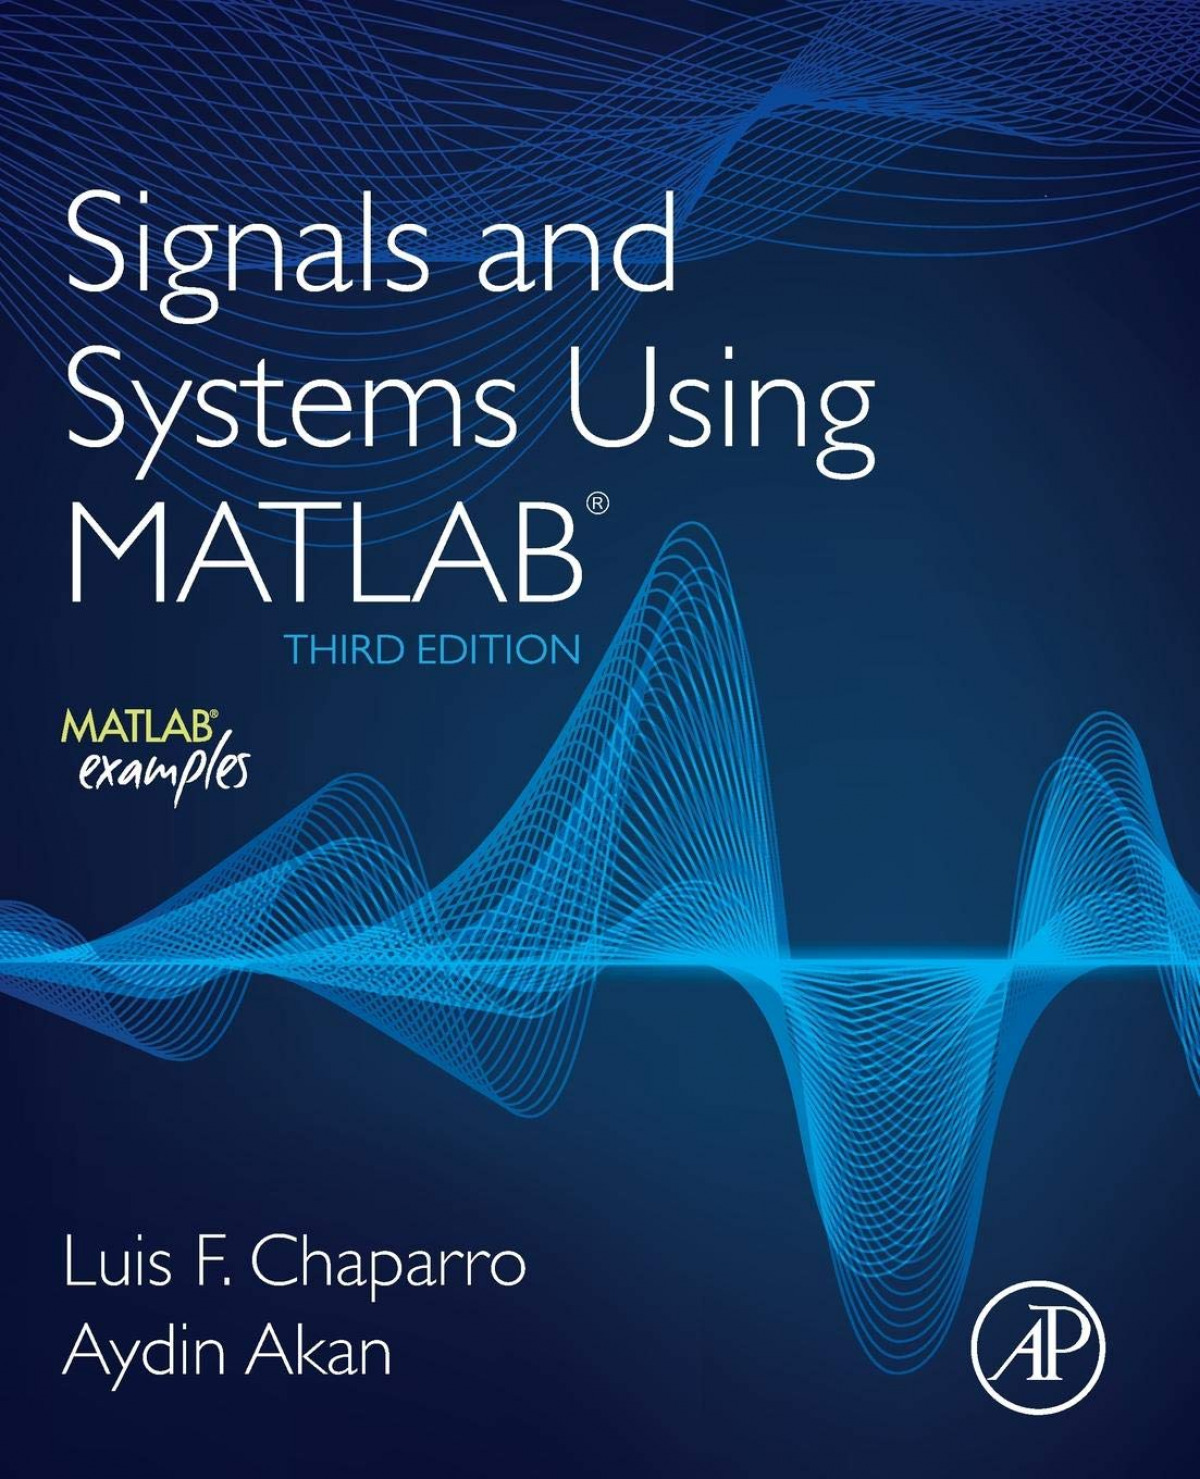 Signals and systems using matlab, 3rd edition